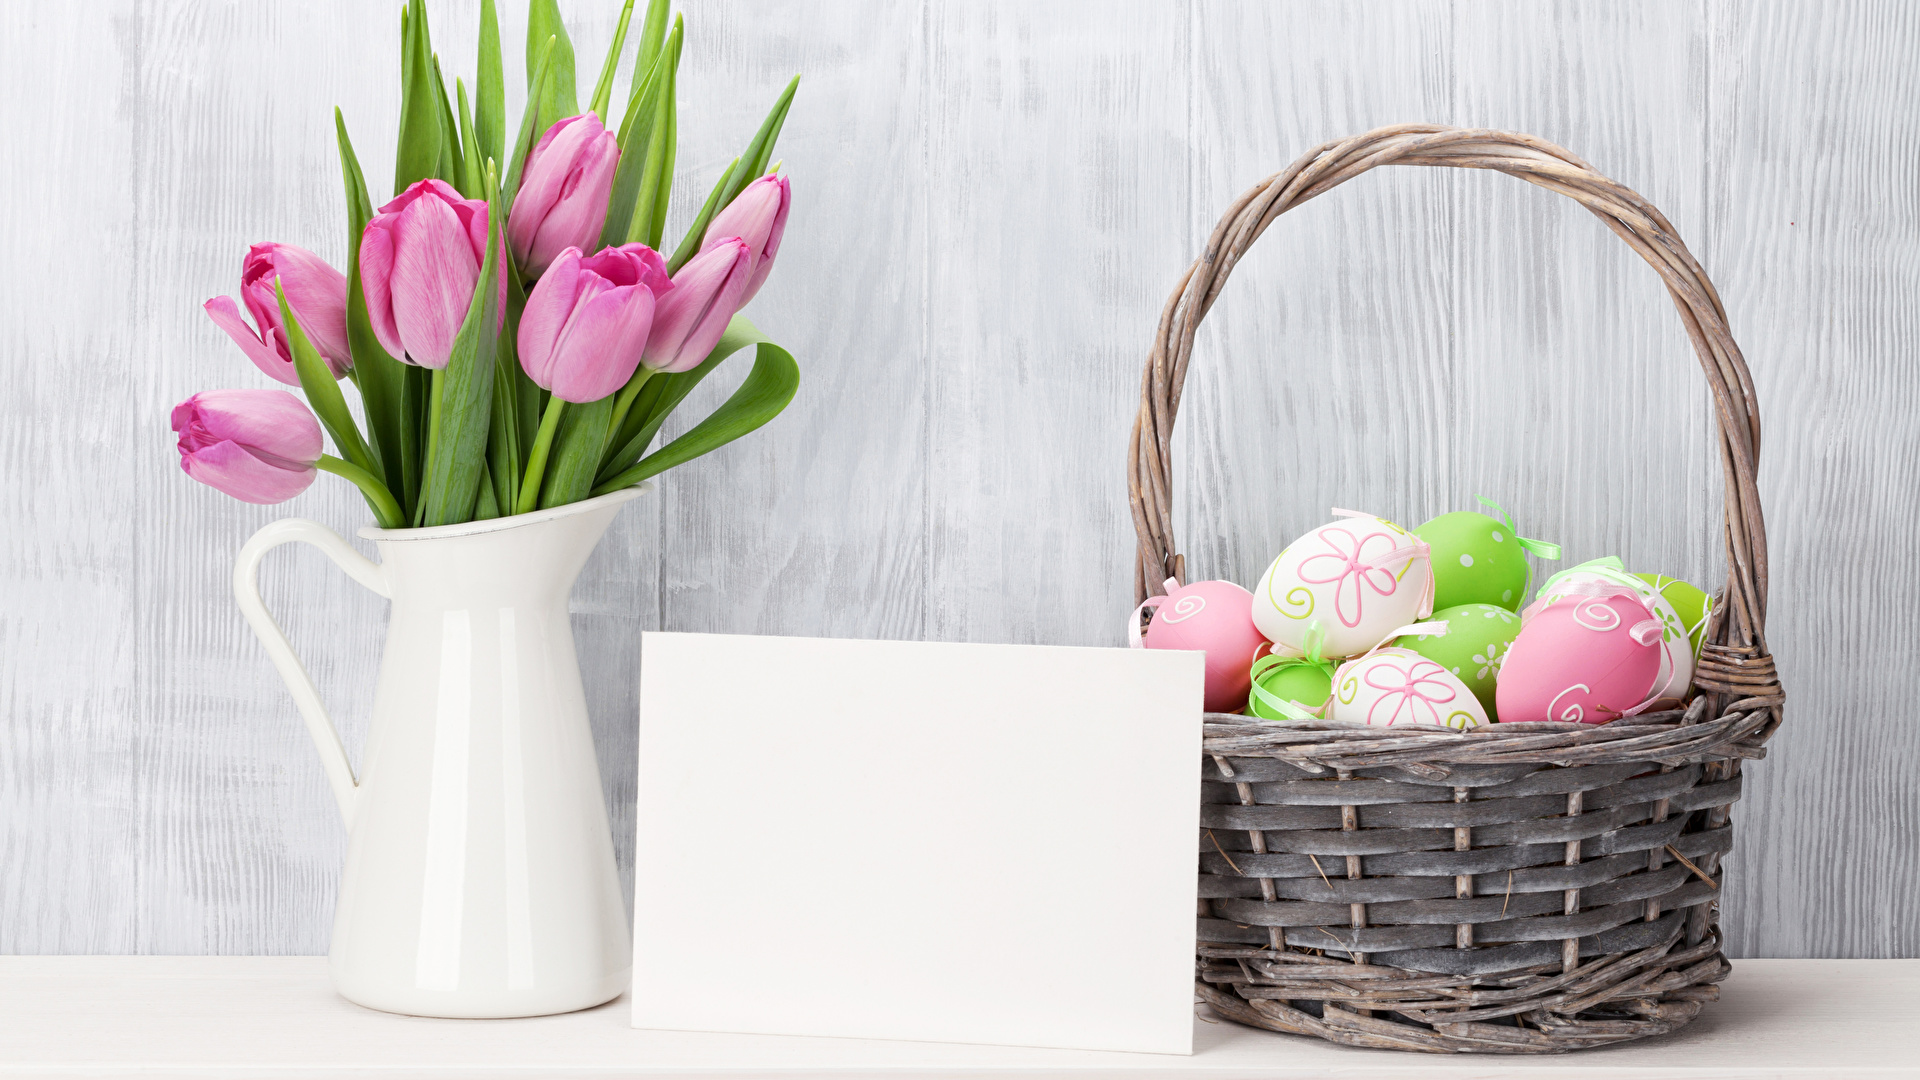 Basket With Flowers wallpaper download